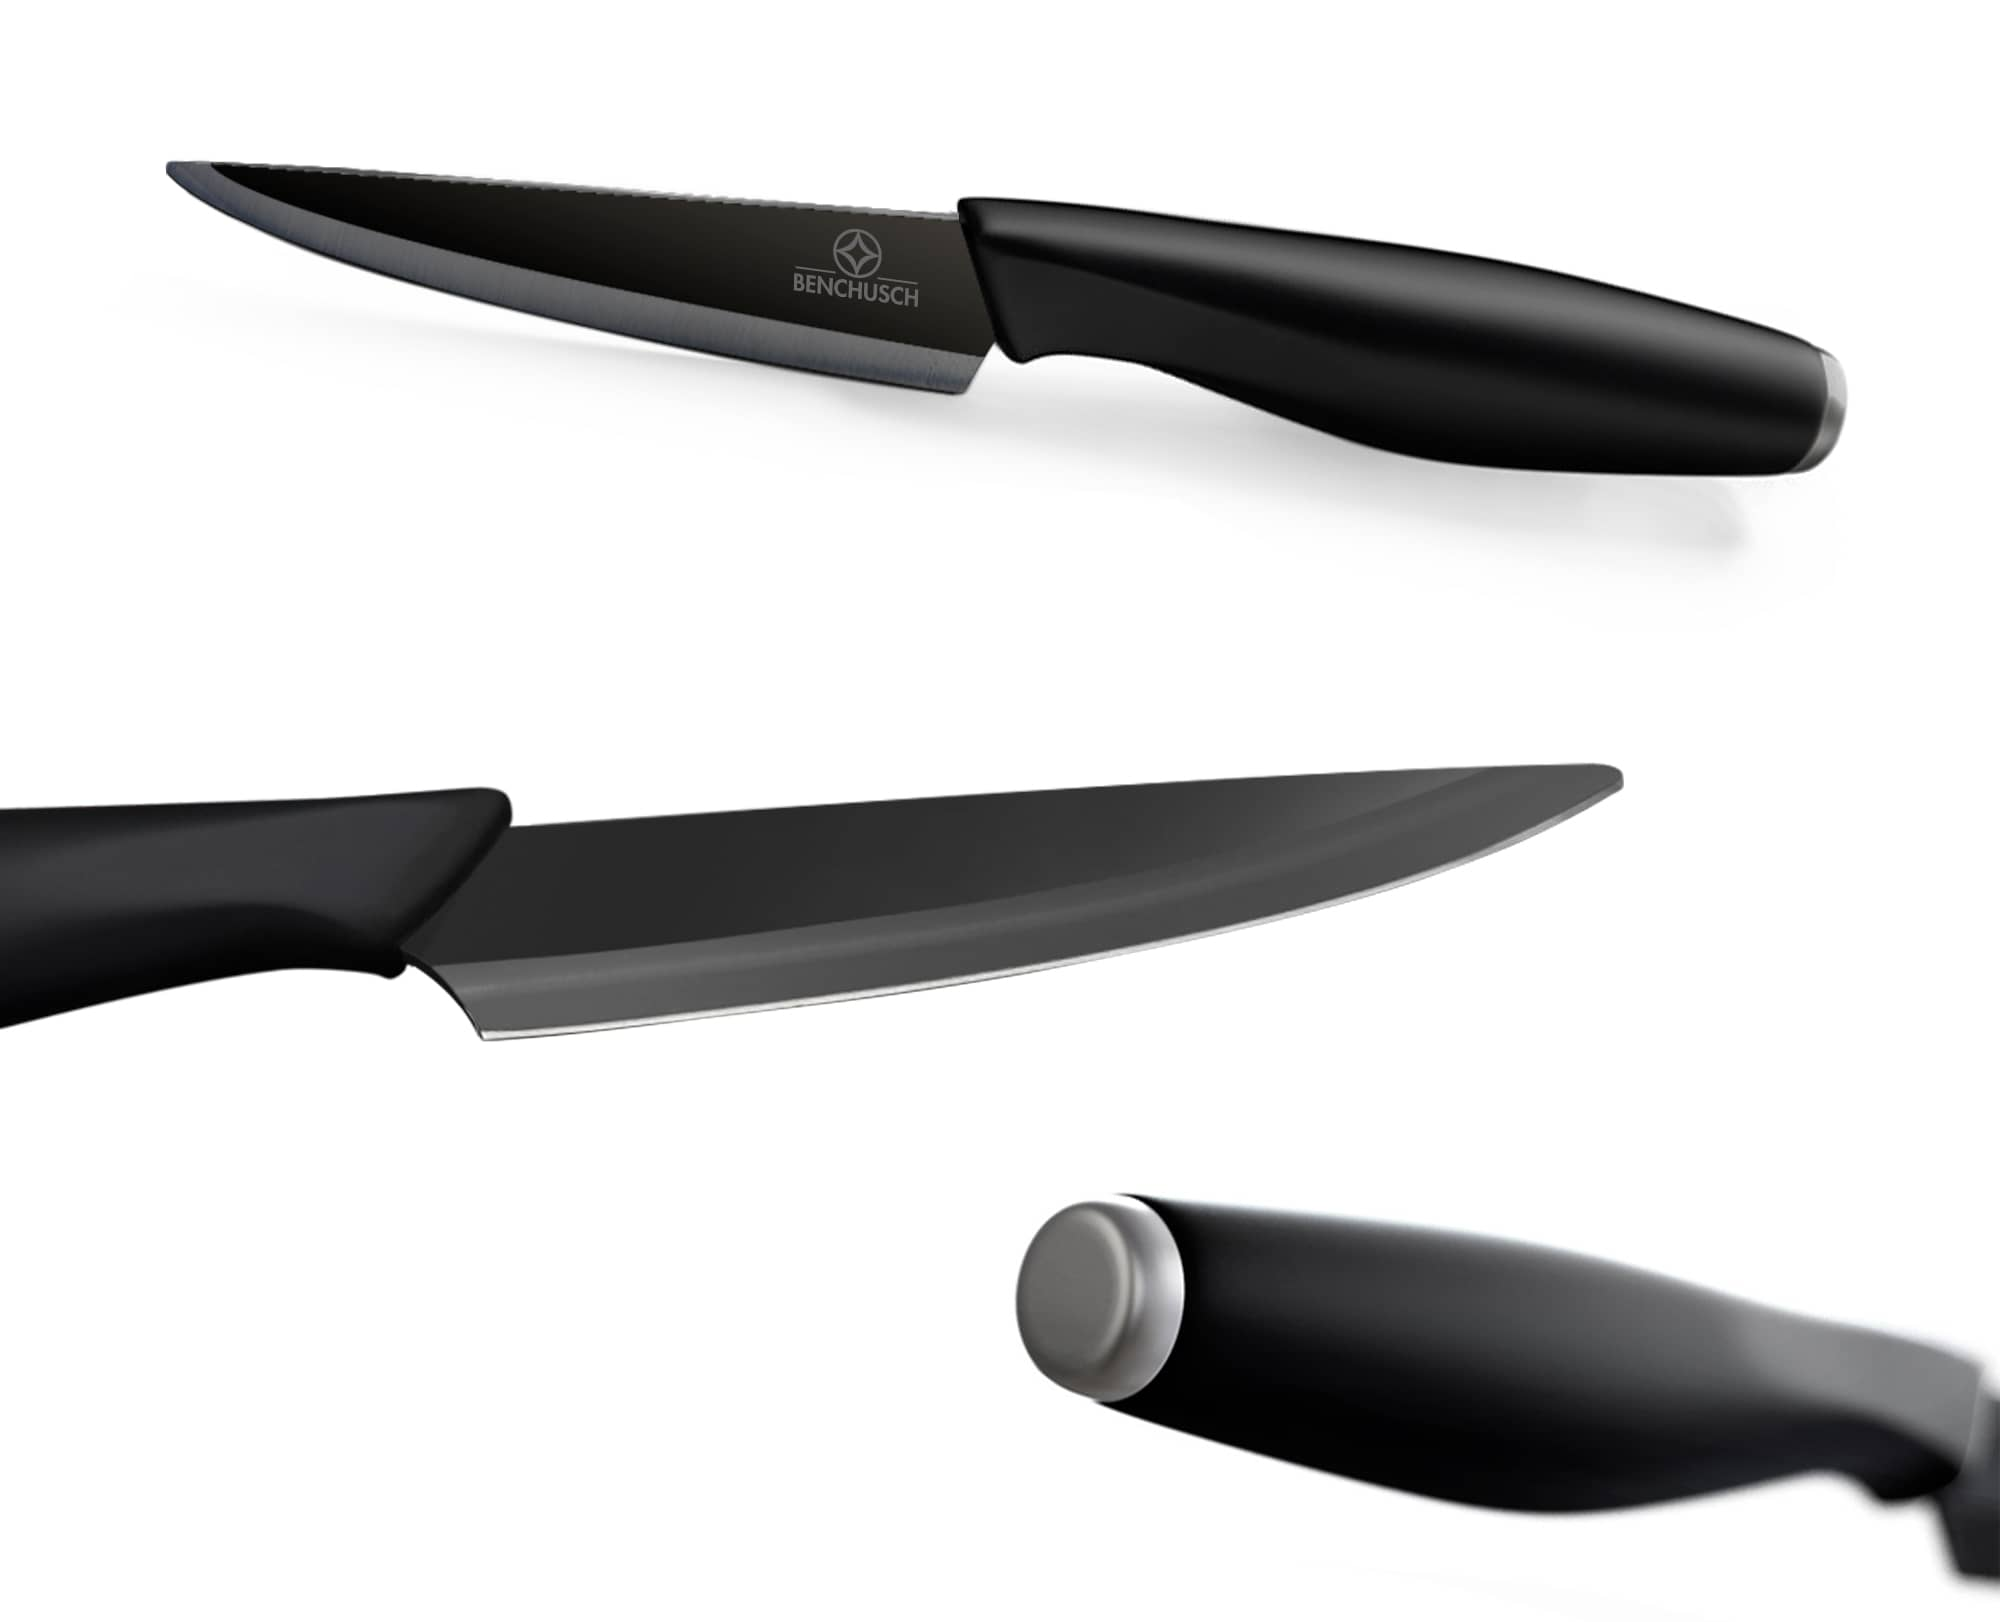 Clearly view of Benchusch Zirconia Series Ceramic Paring Knife